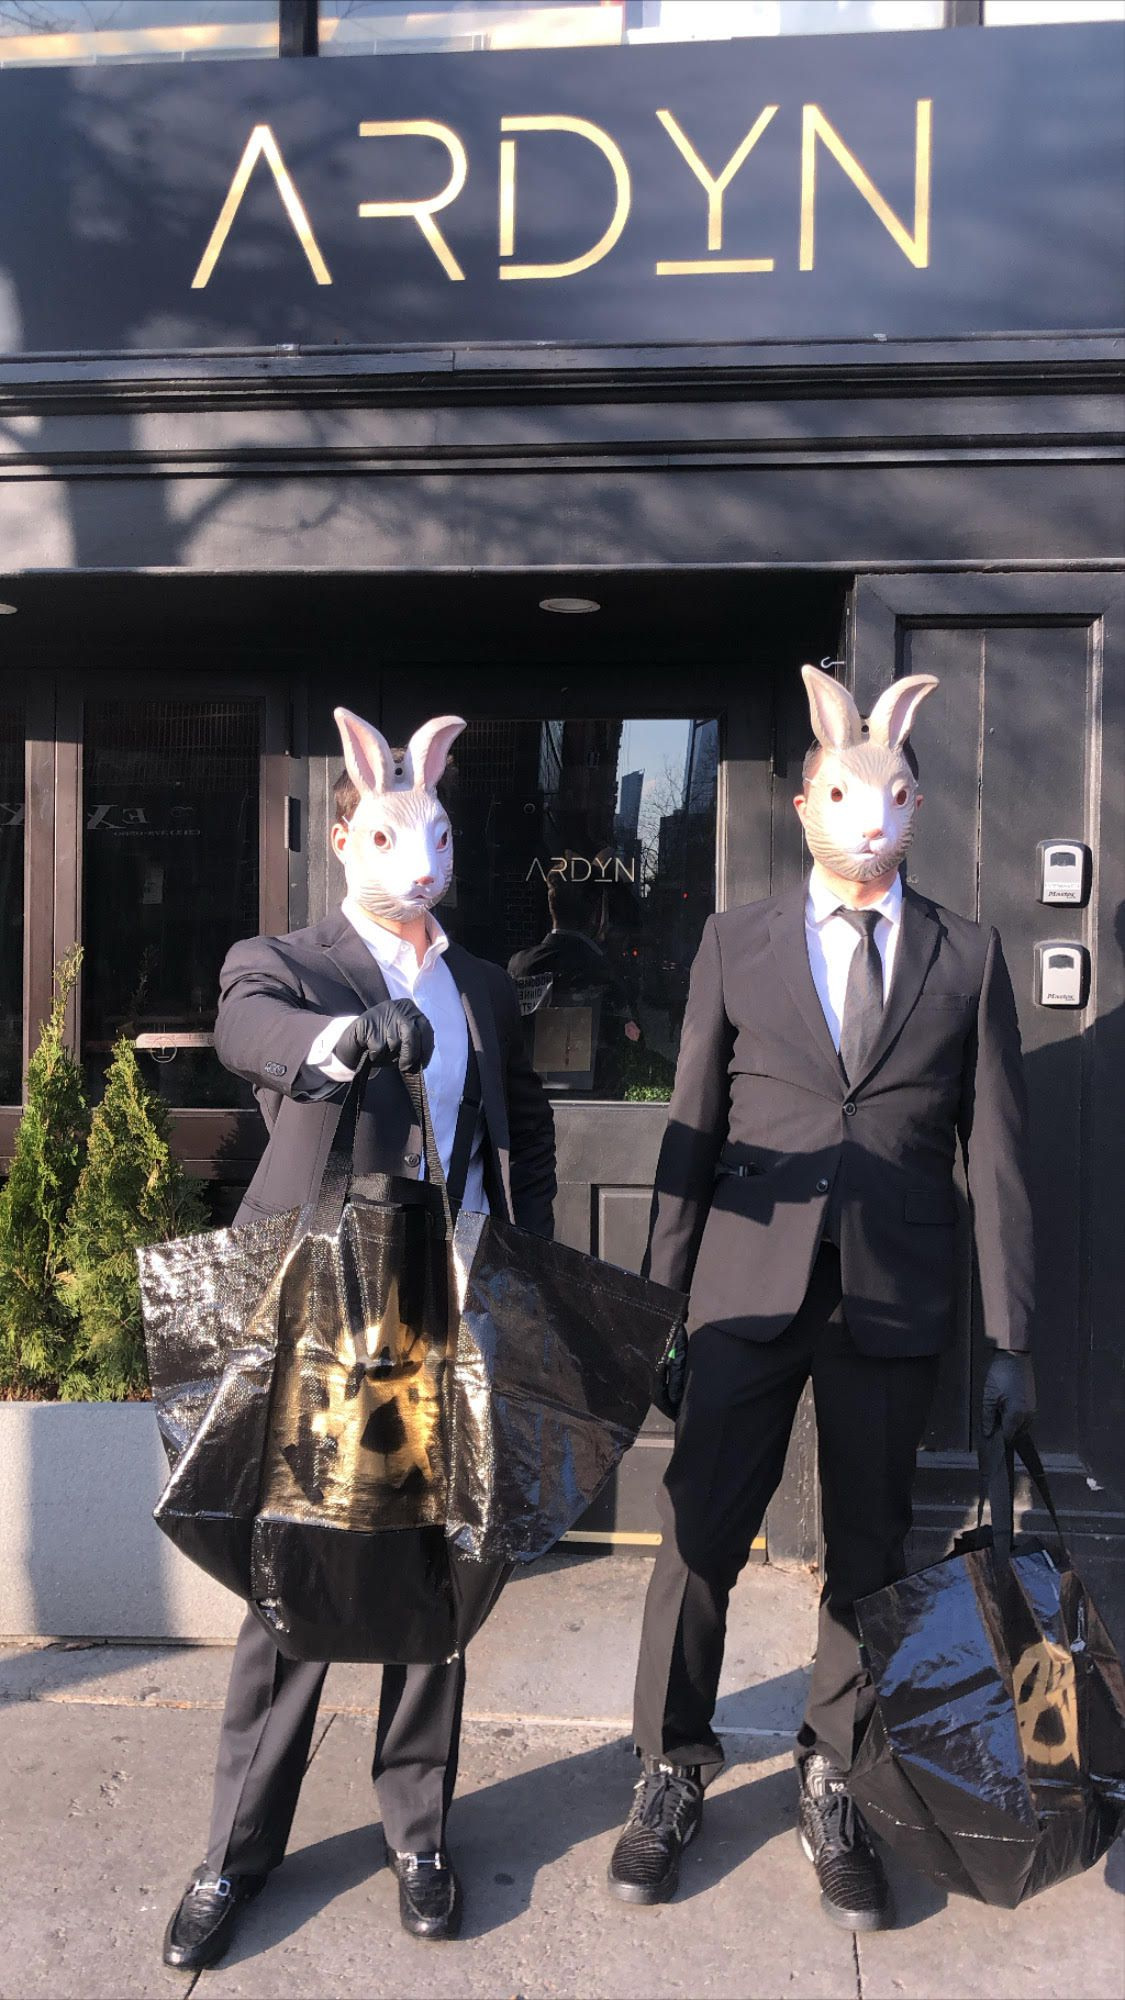 Two men standing outside of a restaurant dressed in black suits and bunny masks, holding bags of food for delivery